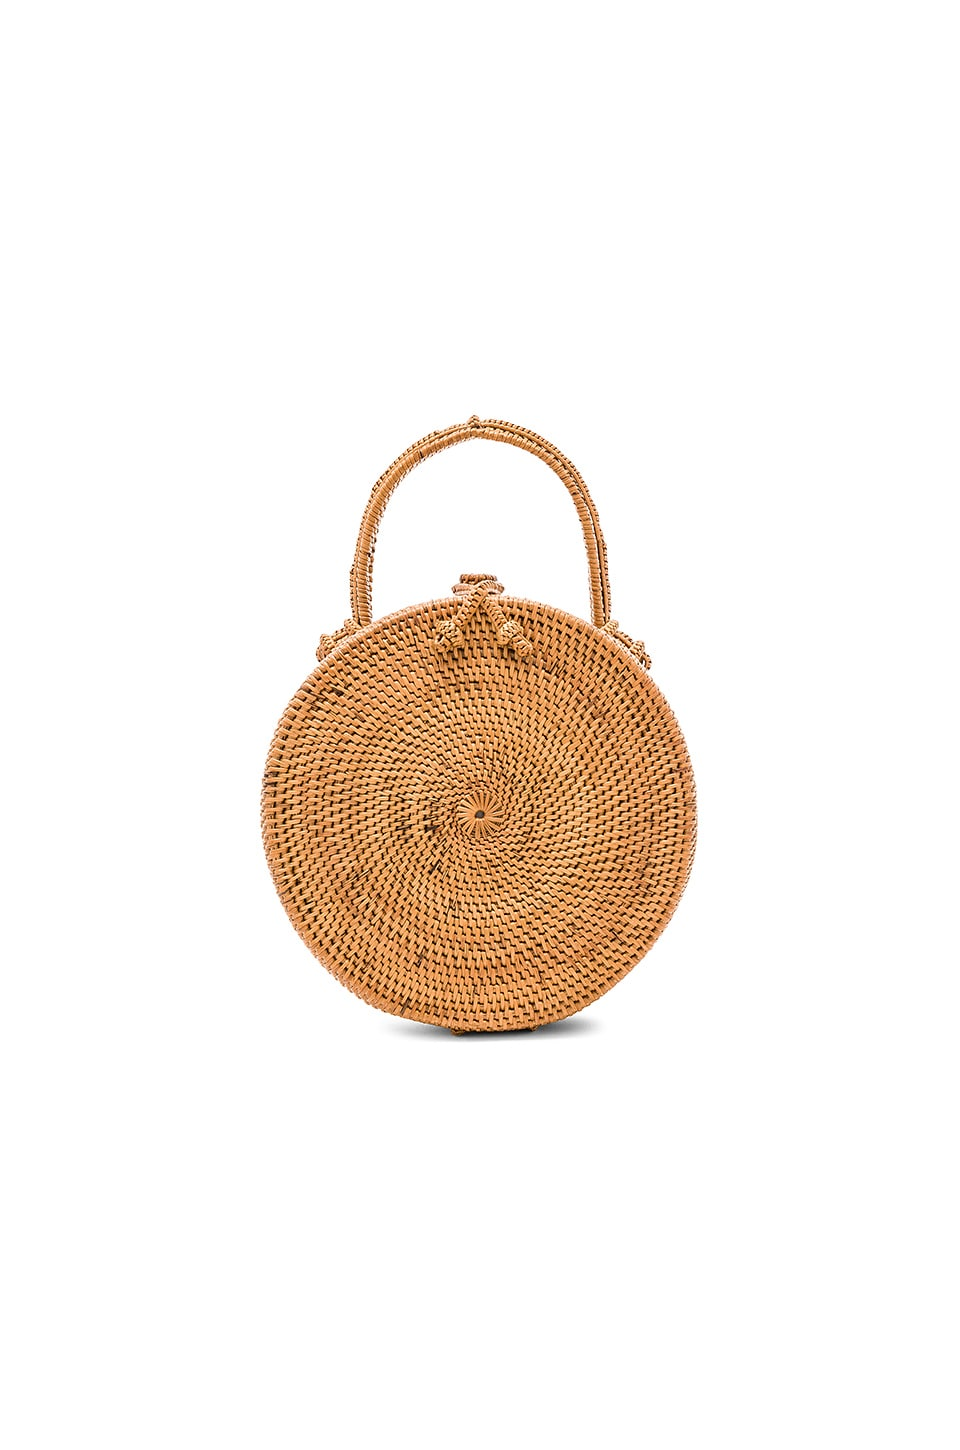 ellen & james Lou Basket Bag in Natural